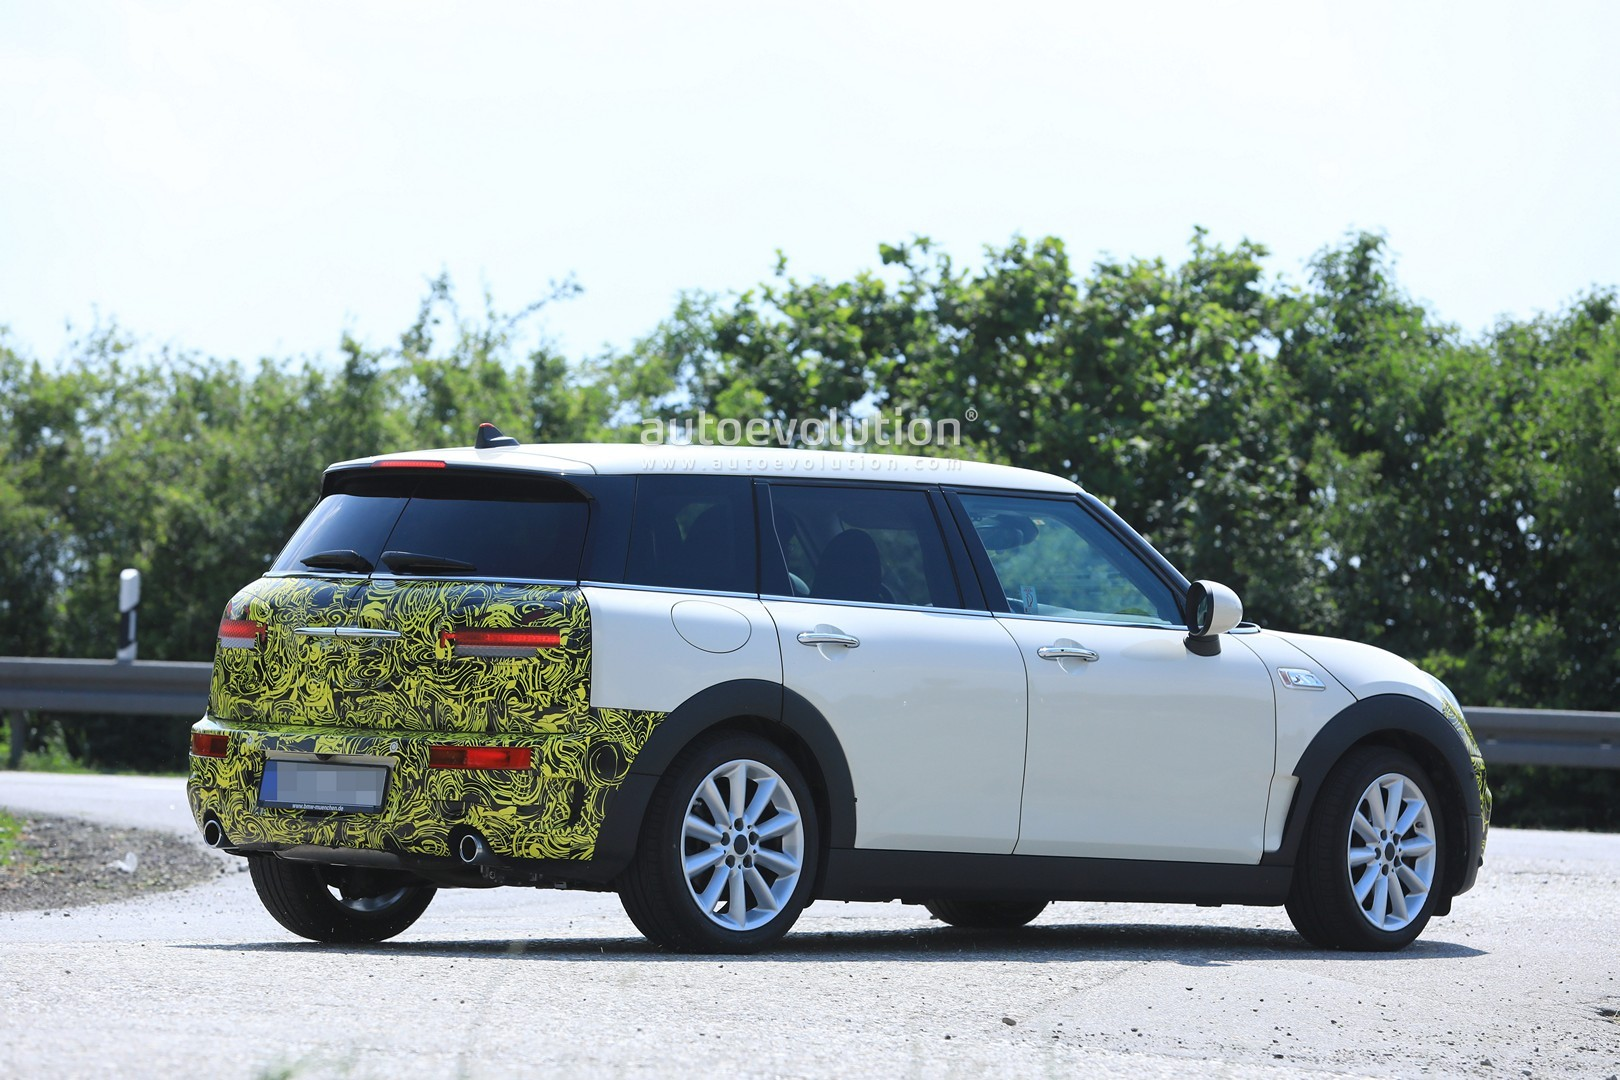 2019 Mini Clubman Facelift Caught For The First Time Could Be